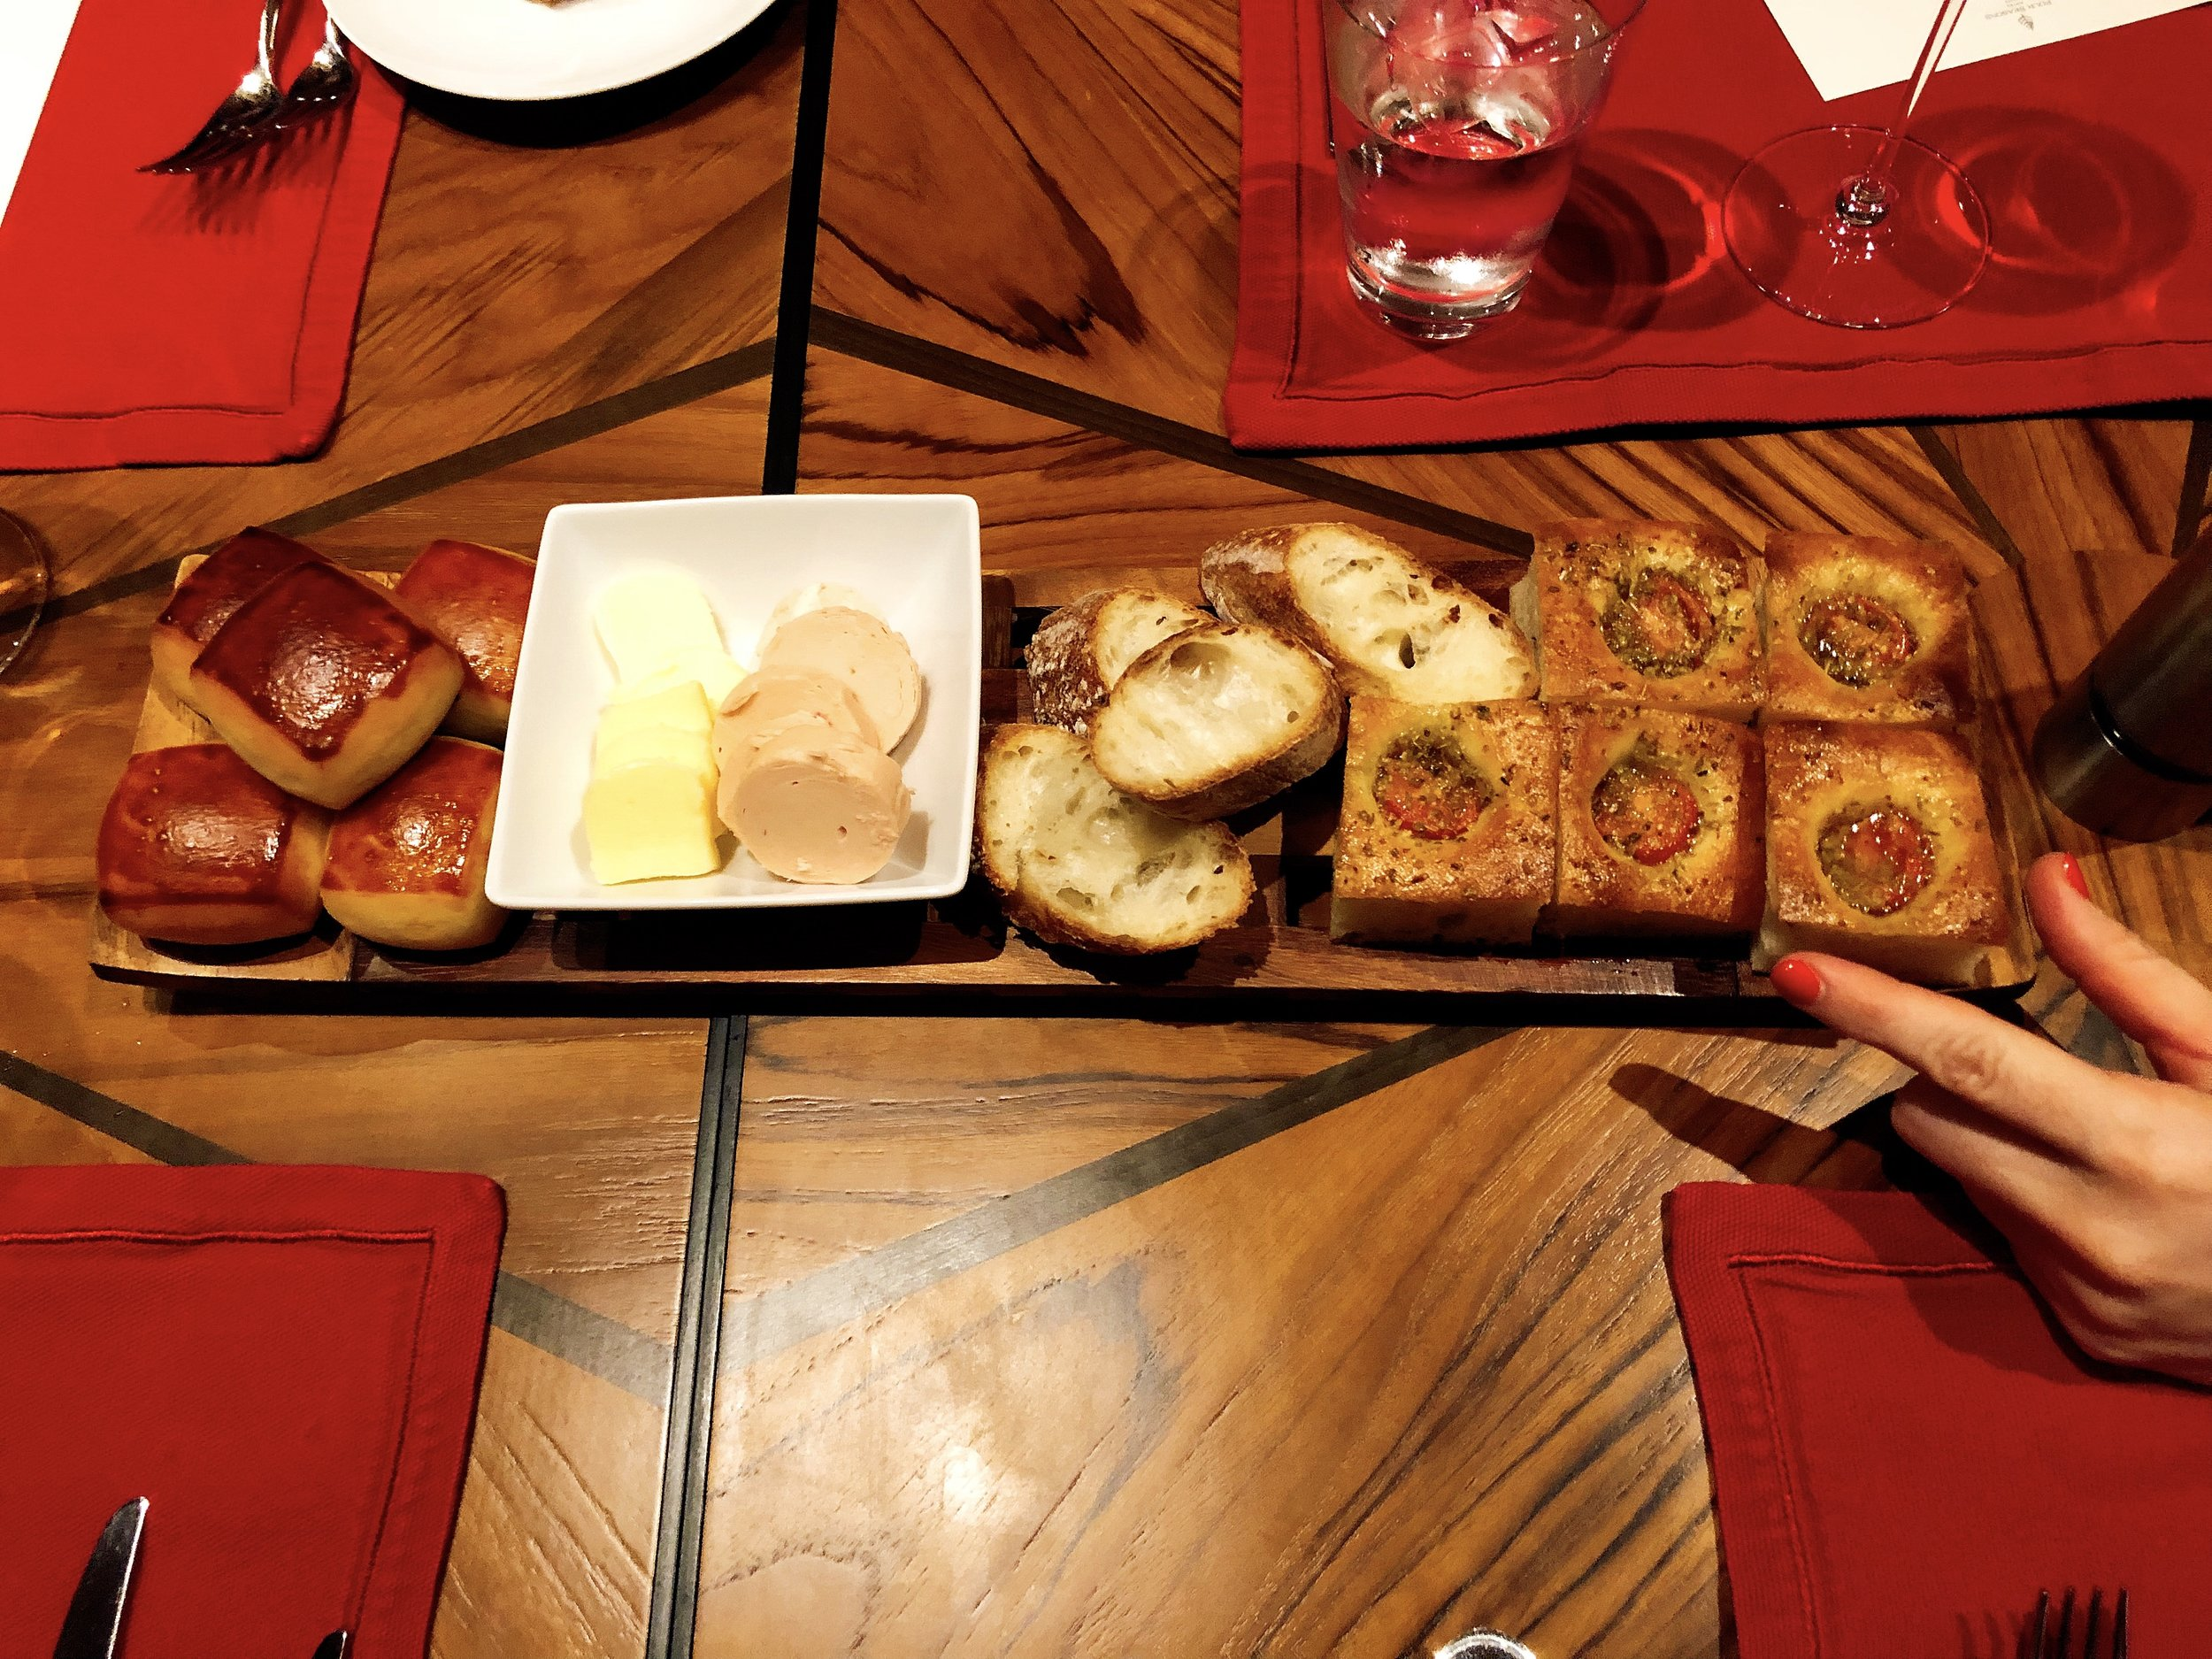 Such A Delicious Assortment Of Breads And Butter